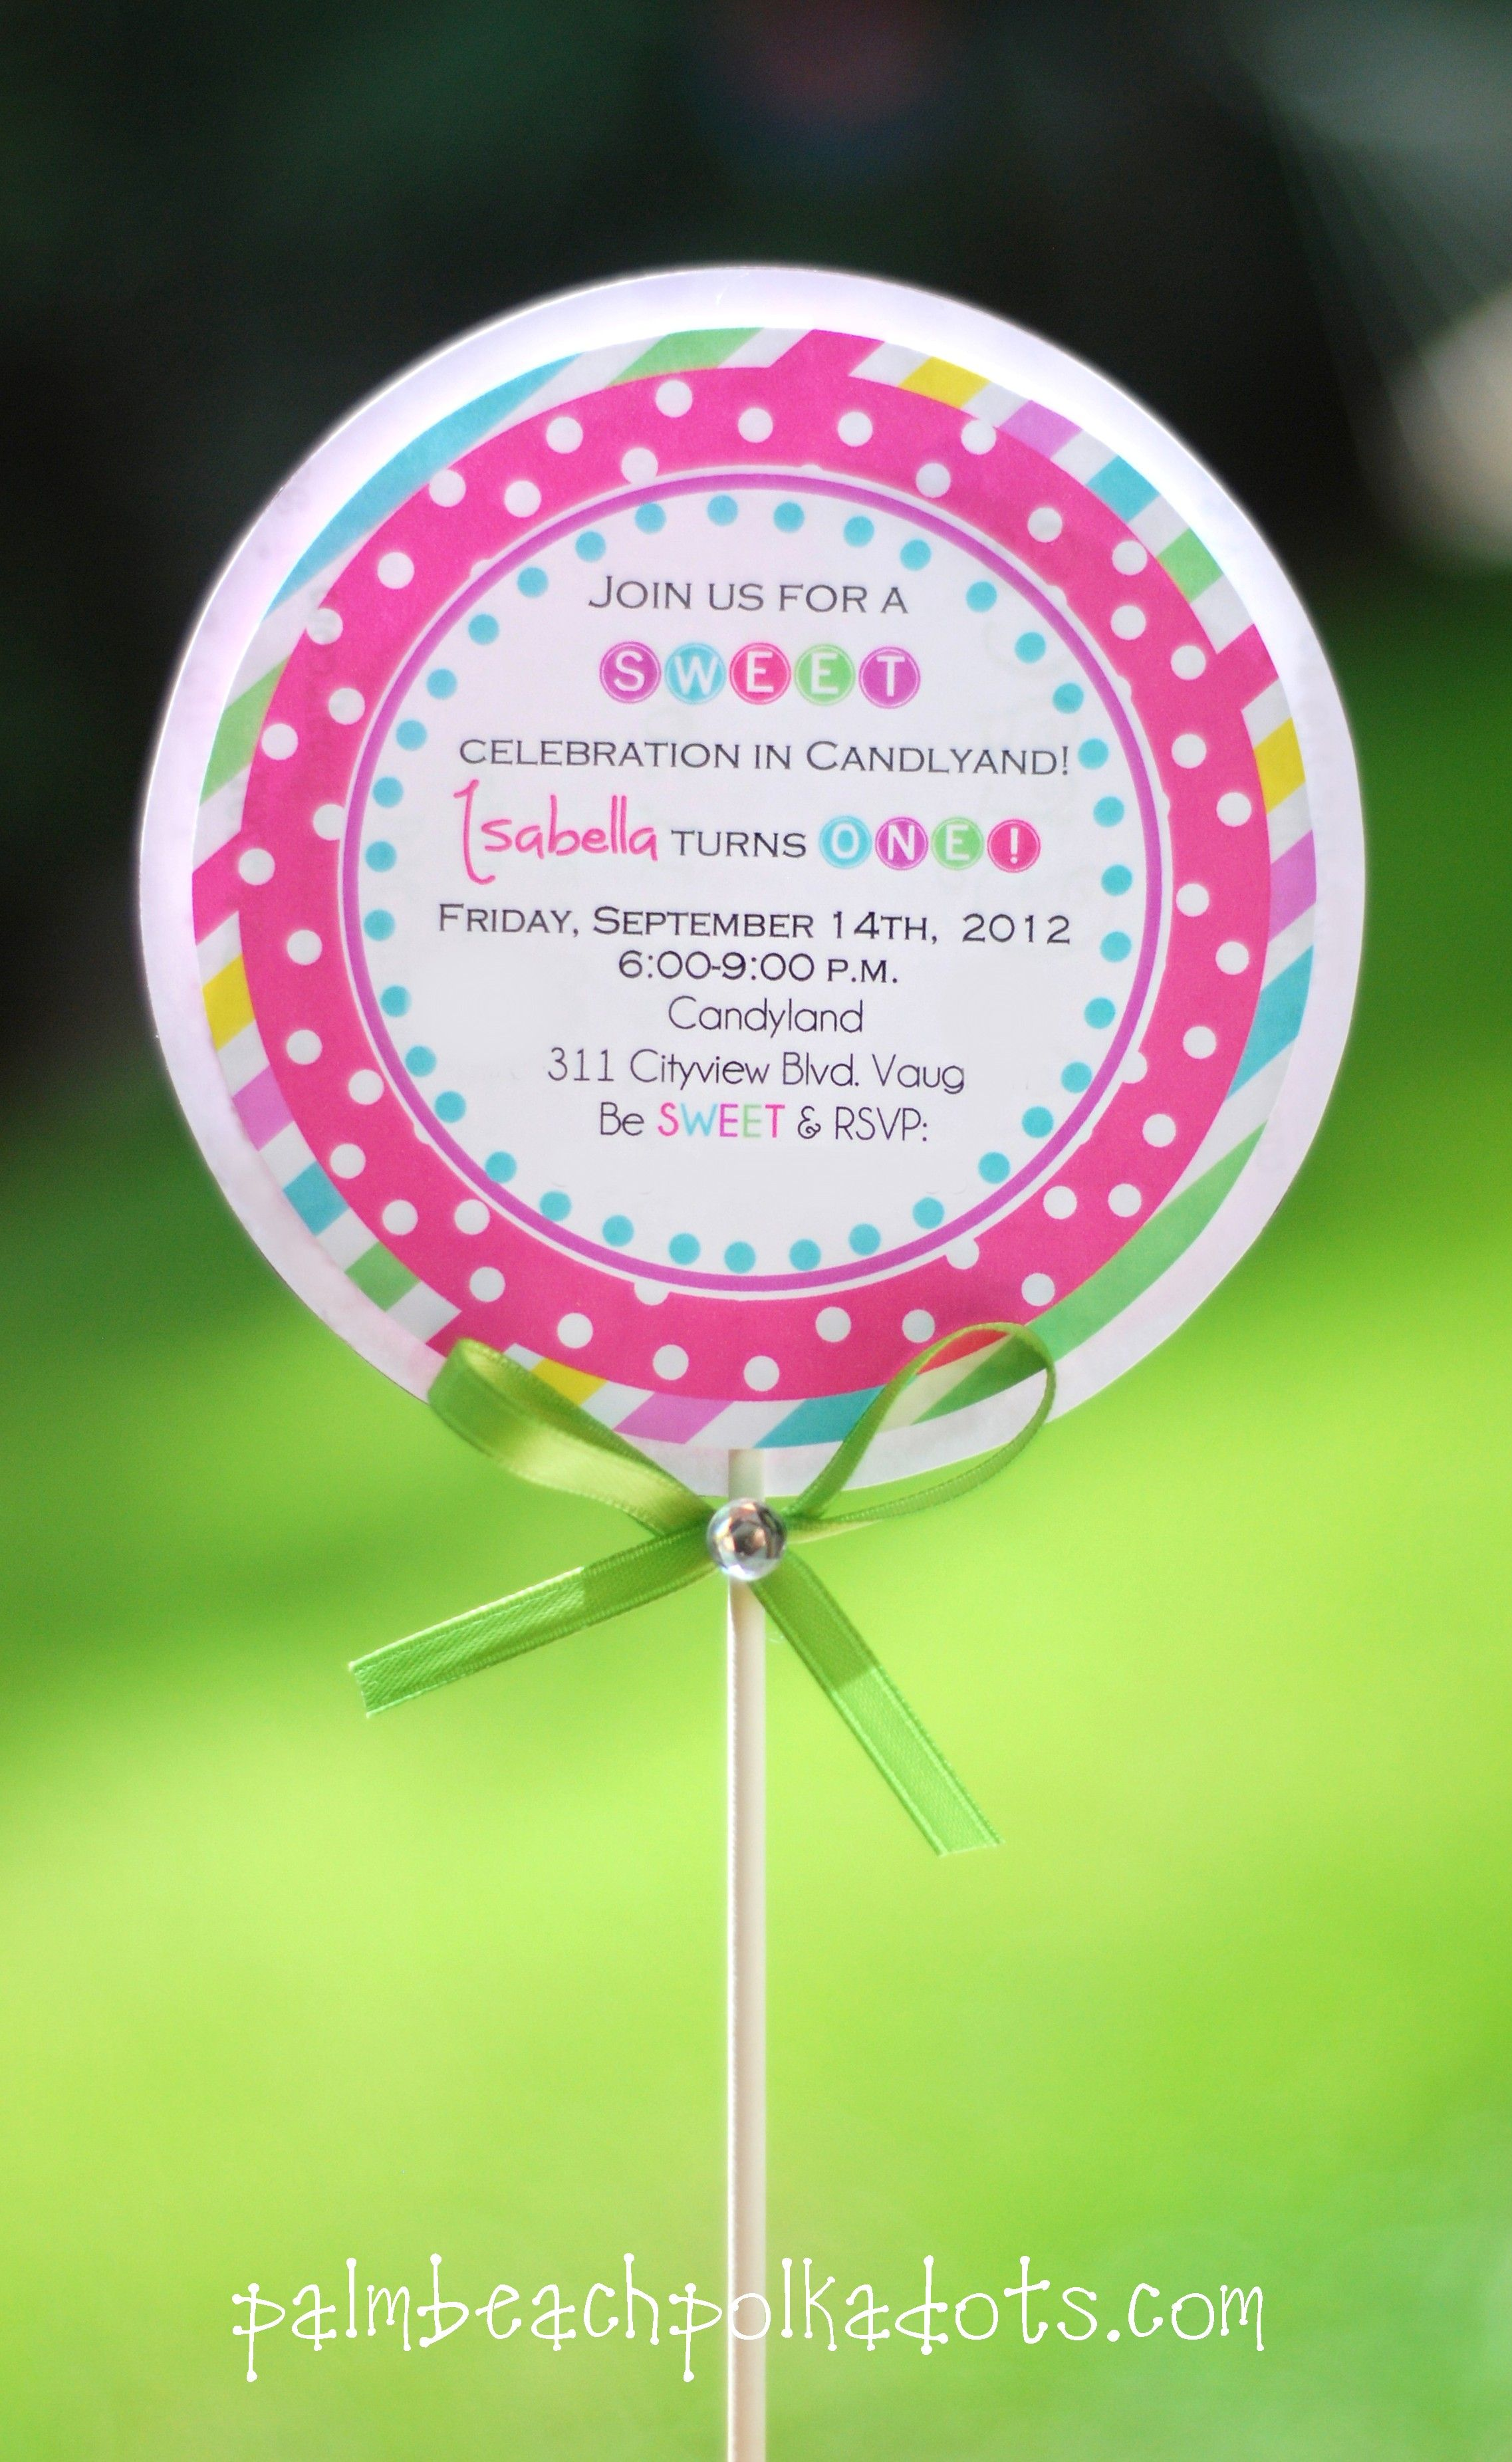 Candyland Lollipop Invitation by PalmBeachPolkadots.com | Inspiring ...